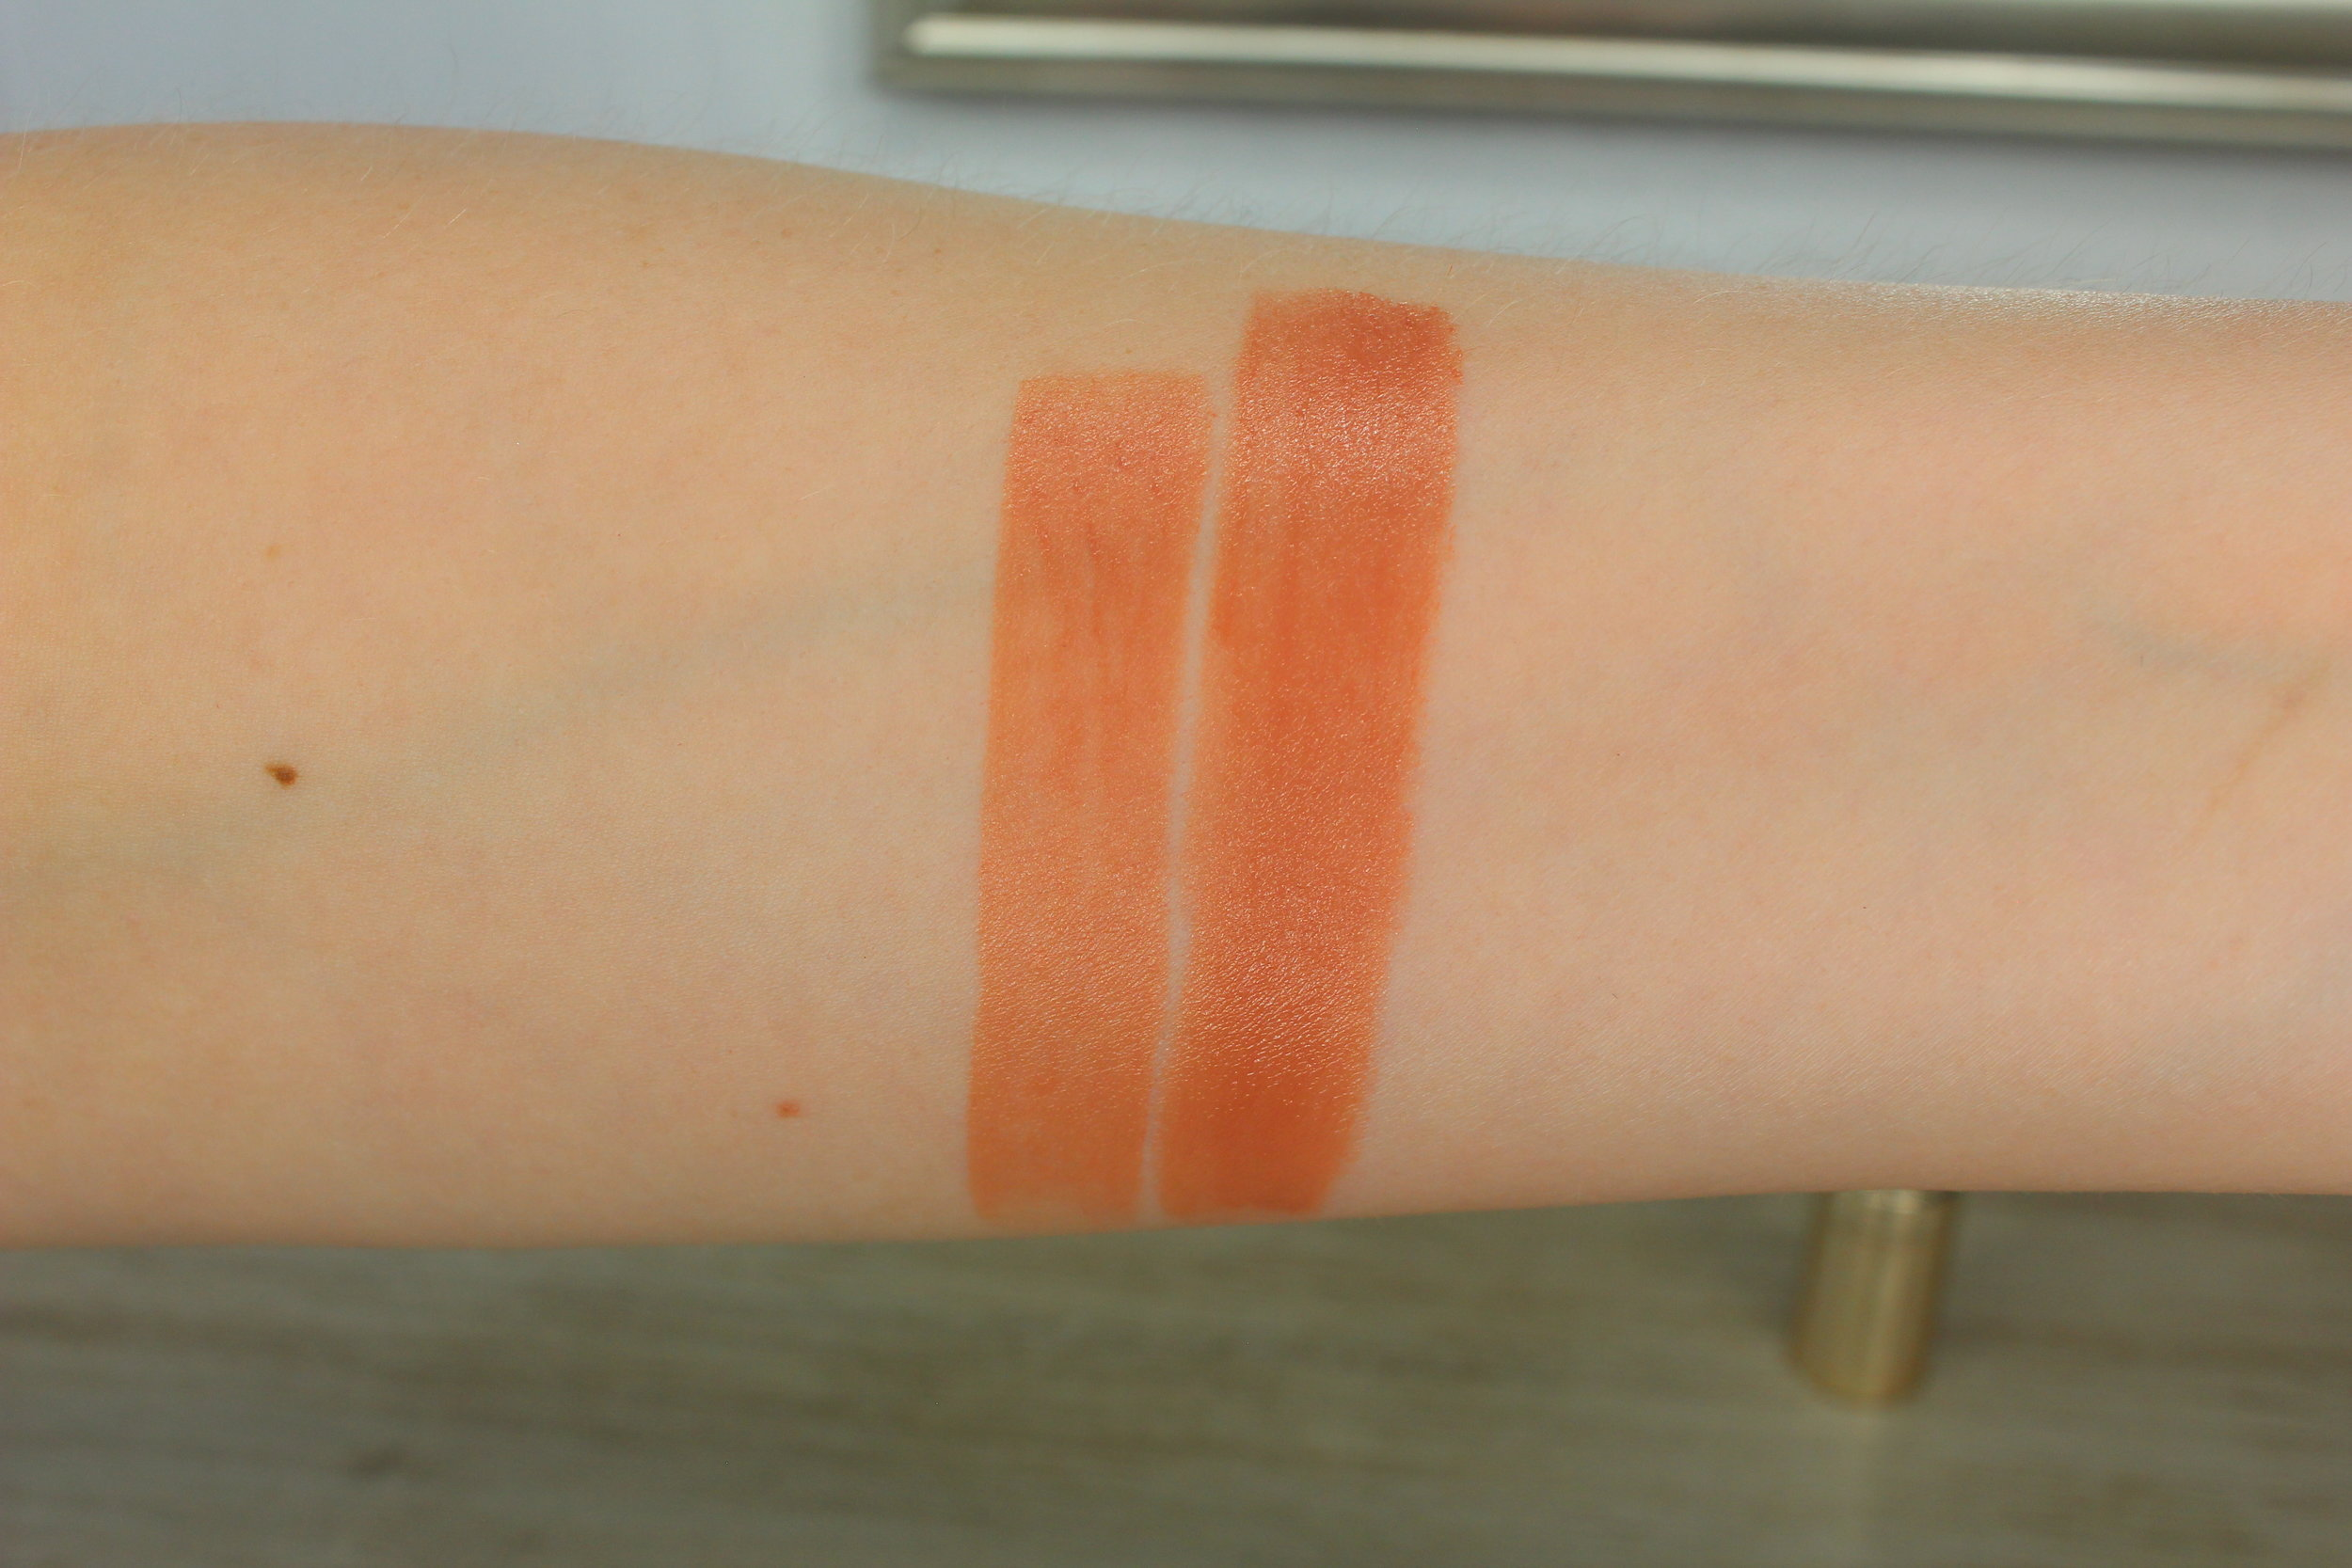 Estee Lauder Naked City (140) swatch